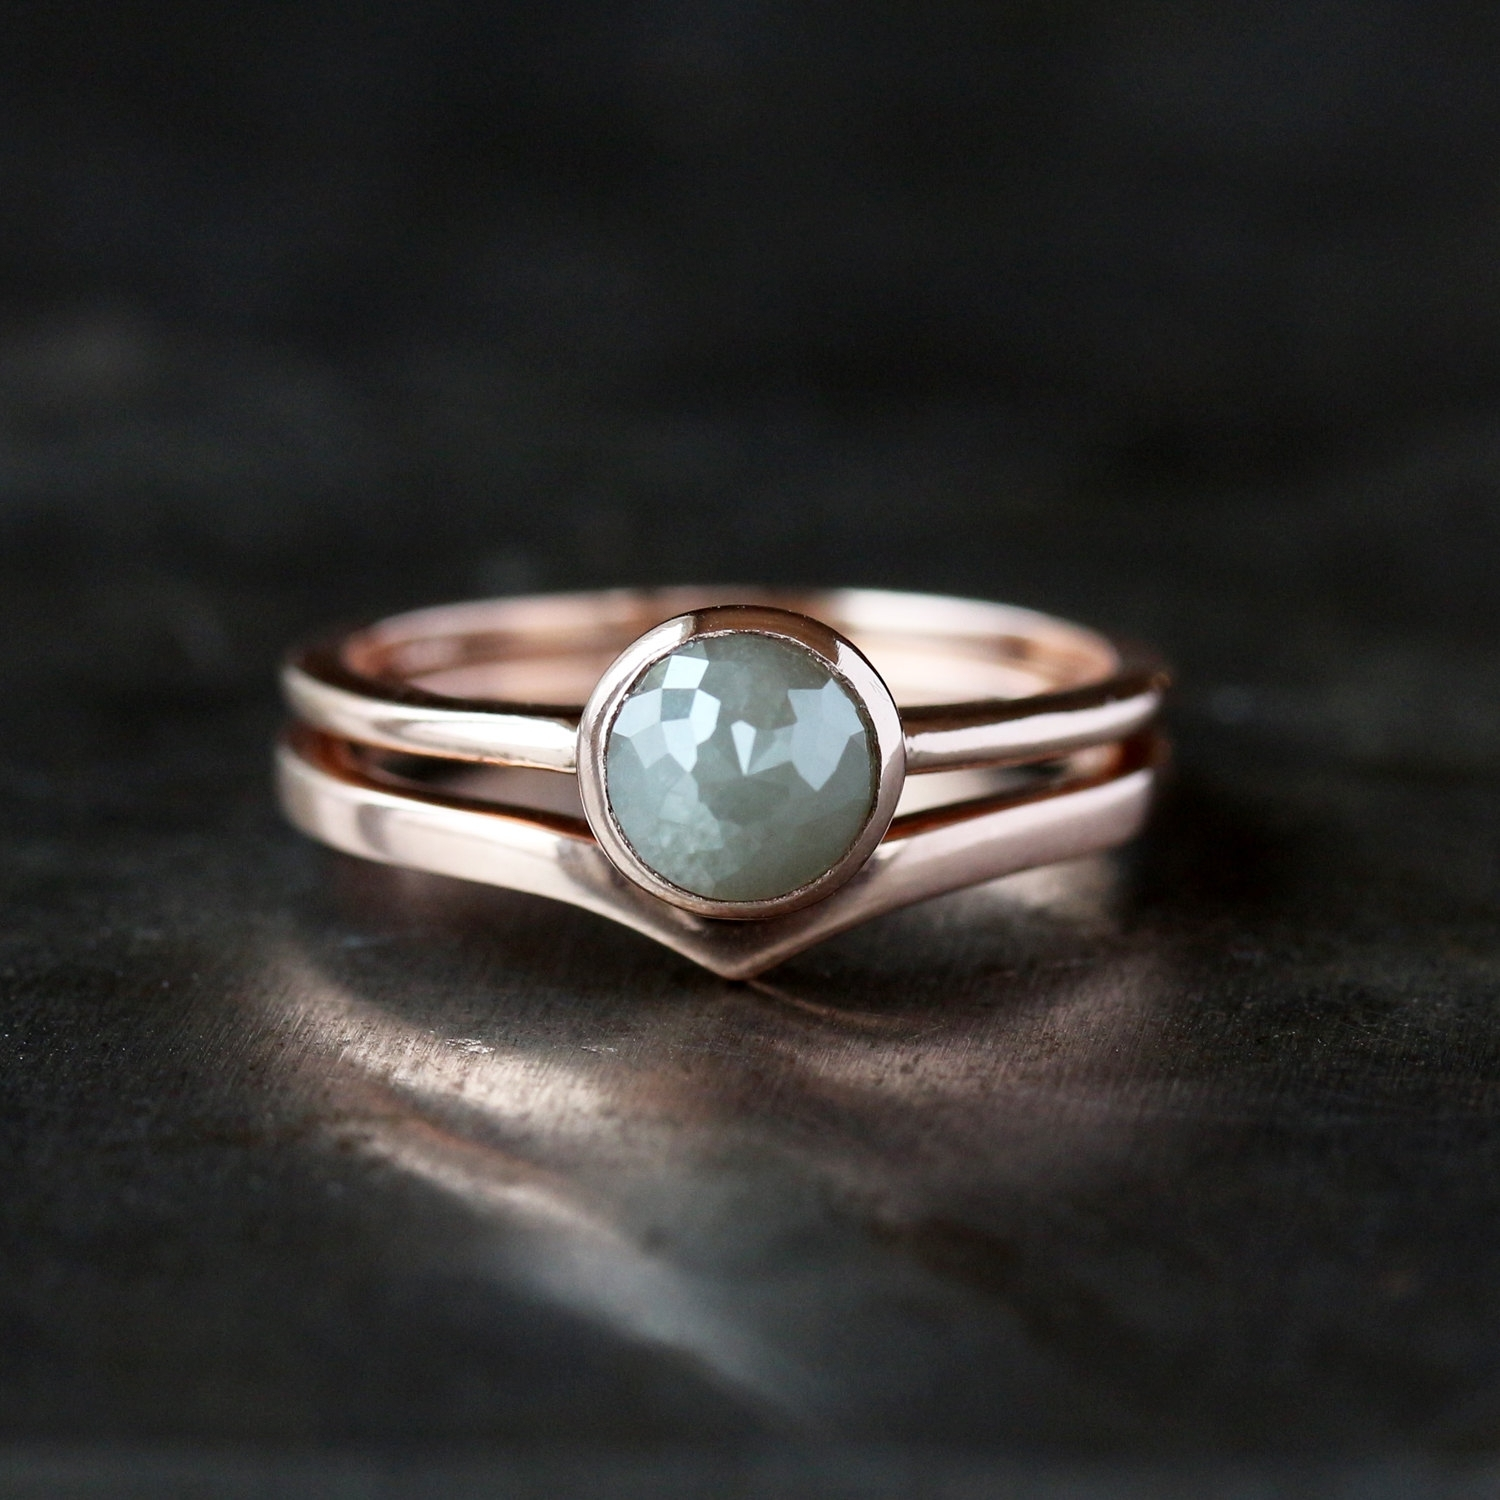 Chevron Wedding Band, 14k Rose Gold Wedding Ring, Contour Band Throughout Best And Newest Chevron Sapphire Rings (View 6 of 15)